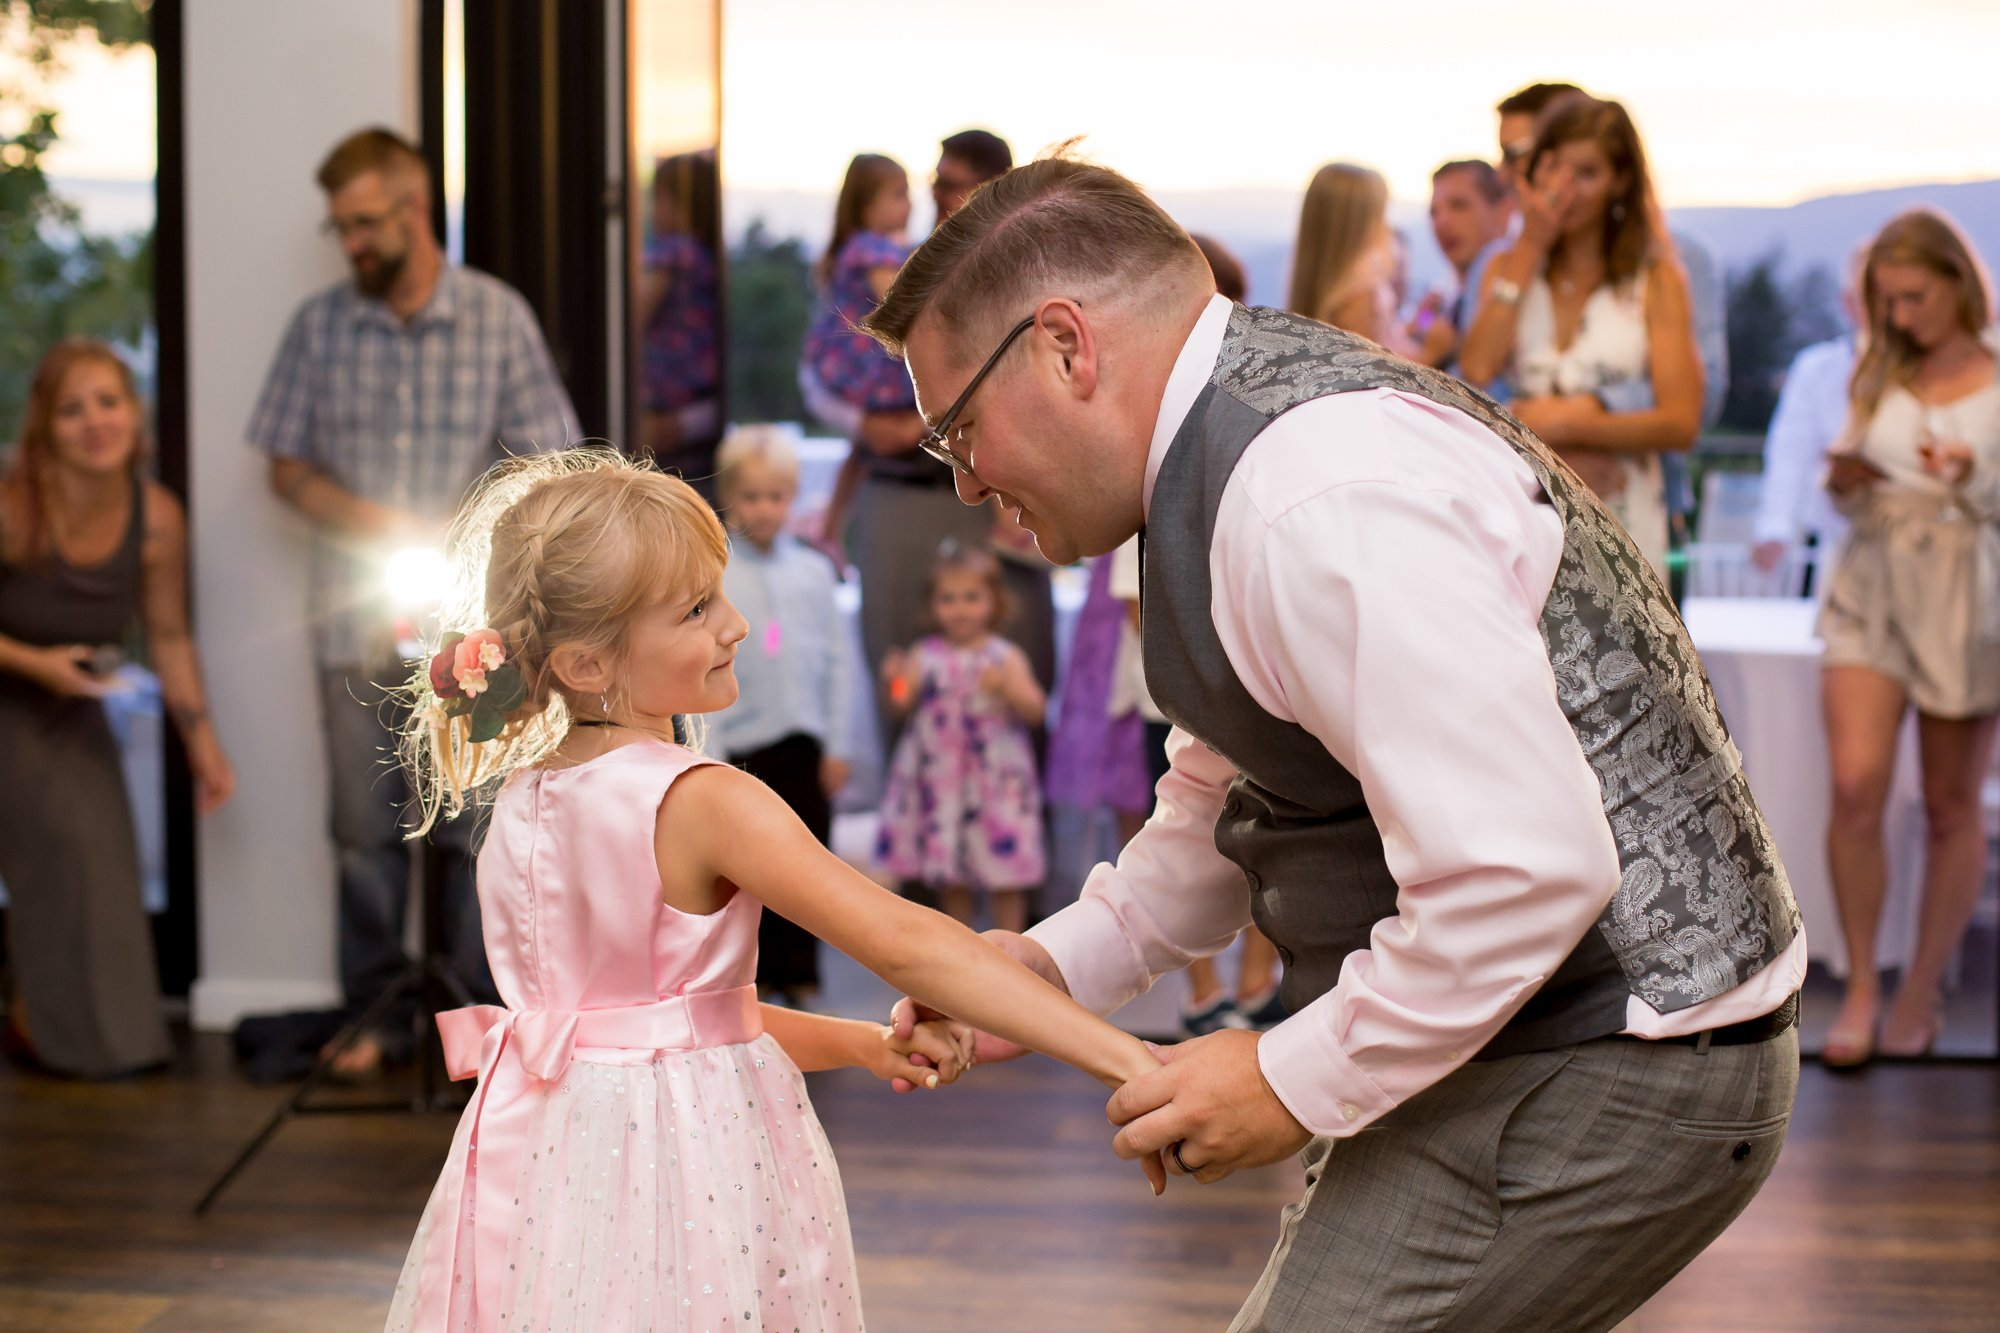 A groom dancing with his daughter